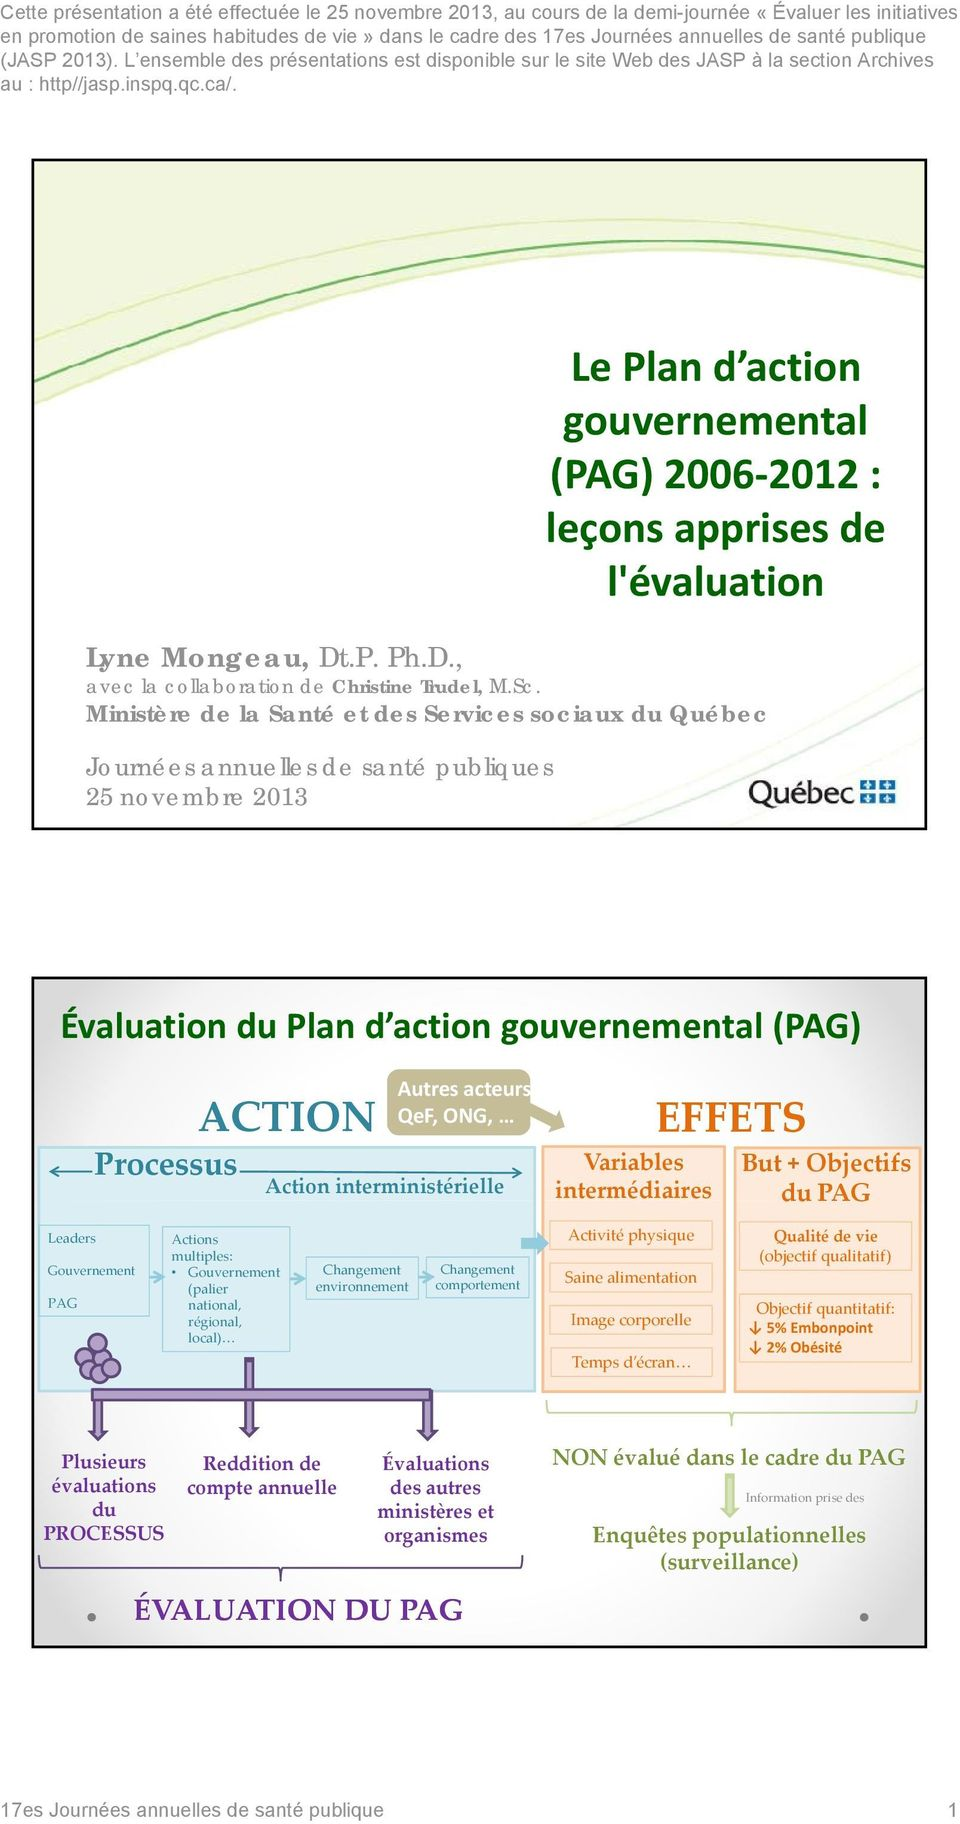 Le Plan d action gouvernemental (PAG) 2006 2012 : leçons apprises de l'évaluation Lyne Mongeau, Dt.P. Ph.D., avec la collaboration de Christine Trudel, M.Sc.